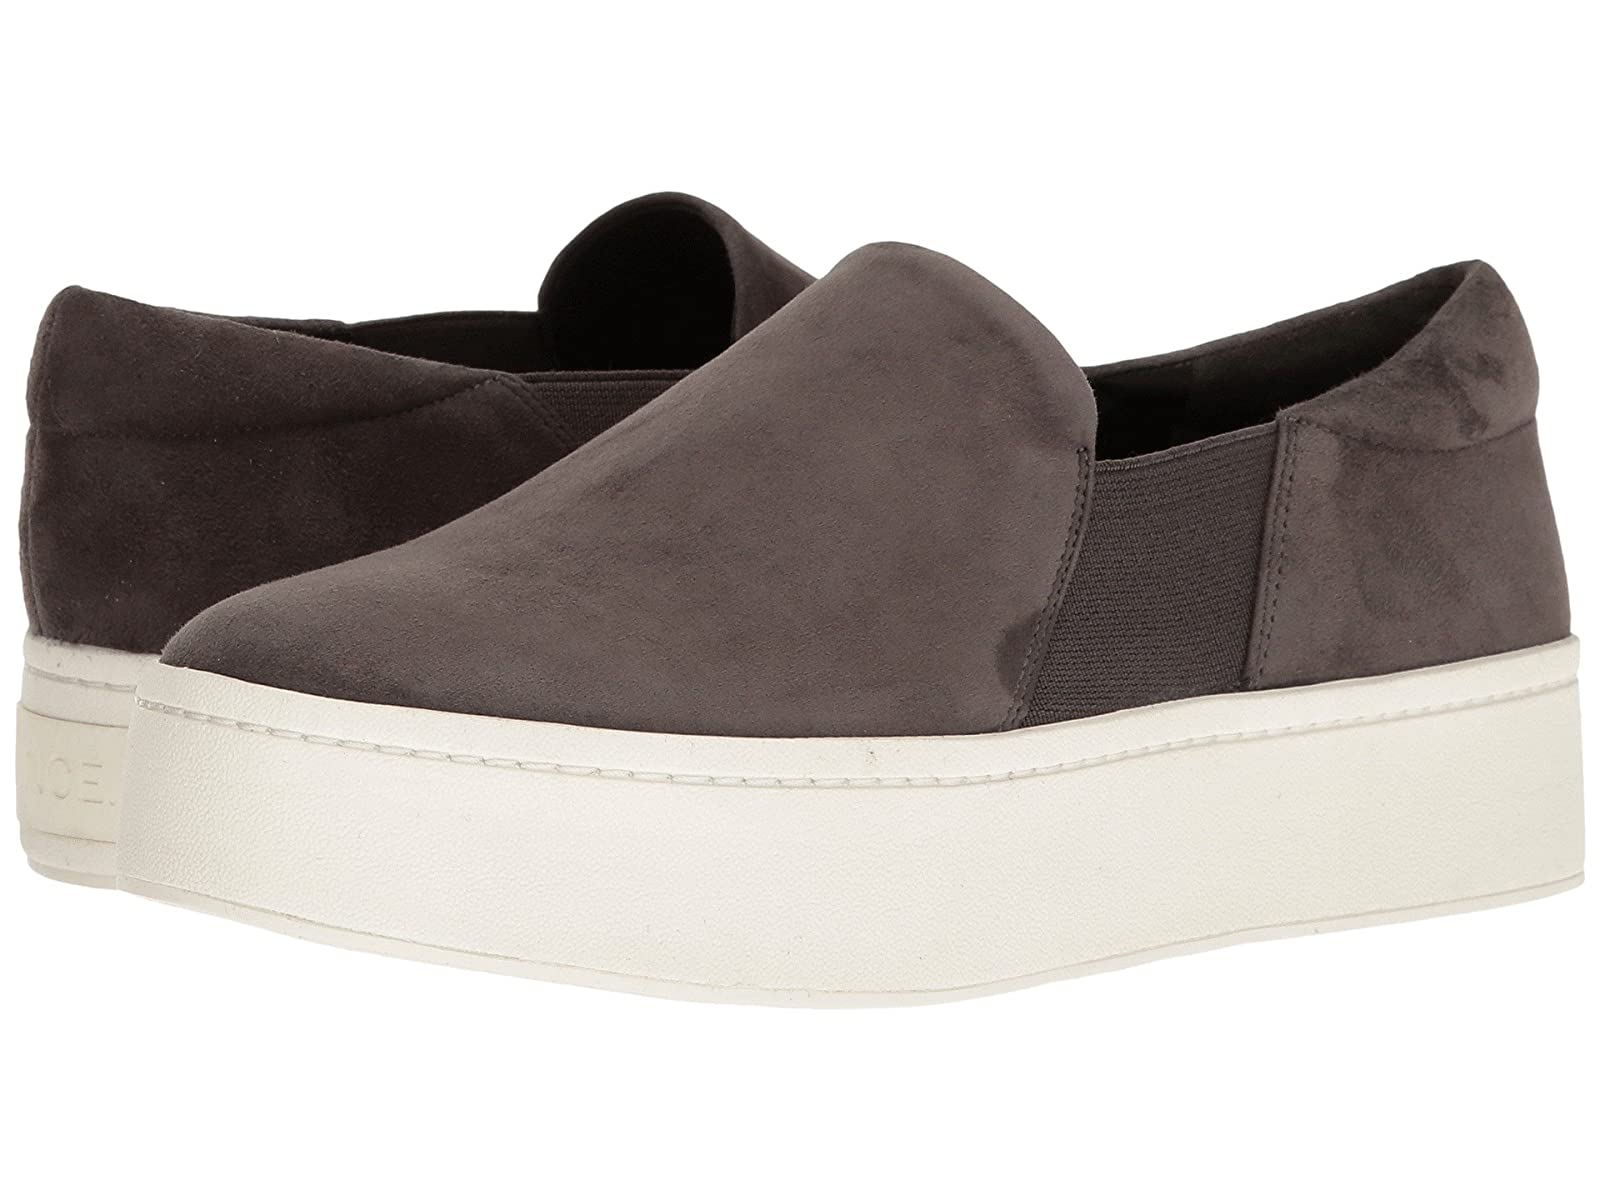 Vince WarrenAtmospheric grades have affordable shoes